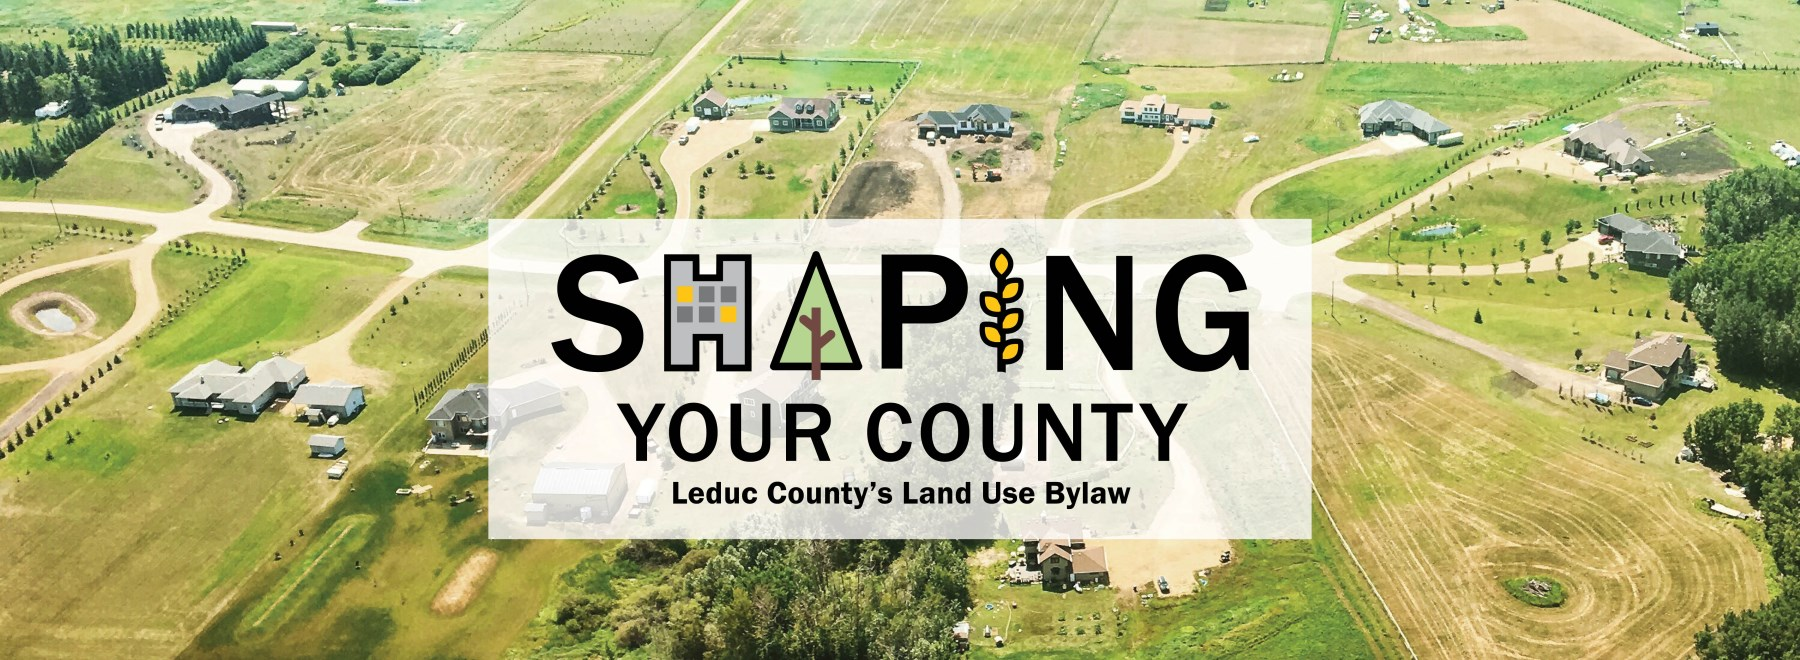 Shaping your county: Leduc County's Land Use Bylaw